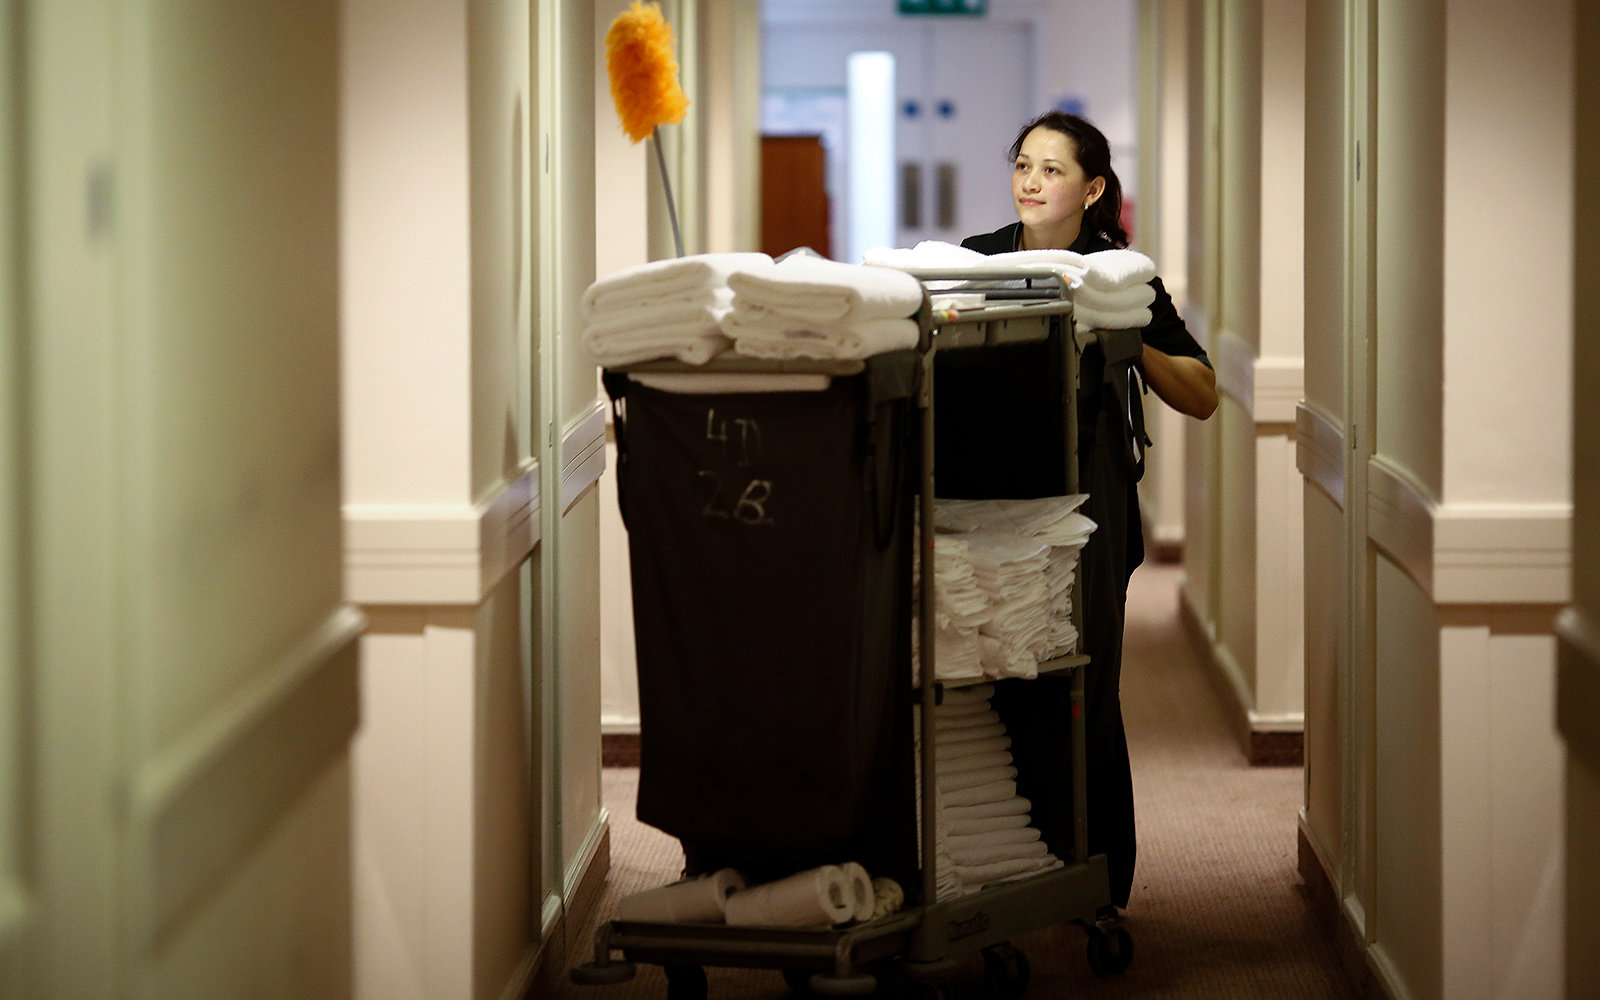 Hotel Cleaning Service